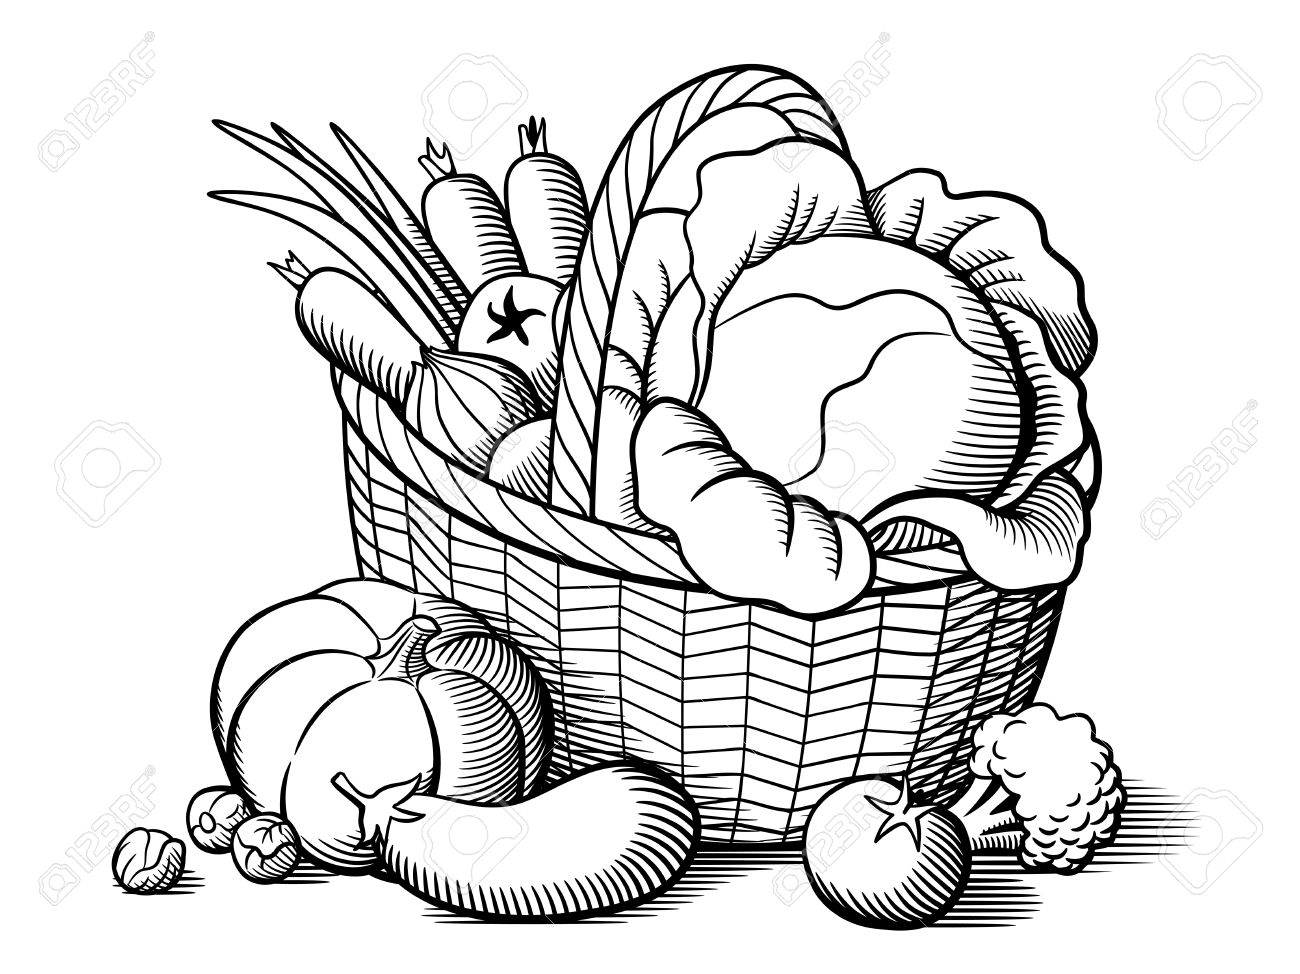 Vegetable Basket Drawing At Getdrawings